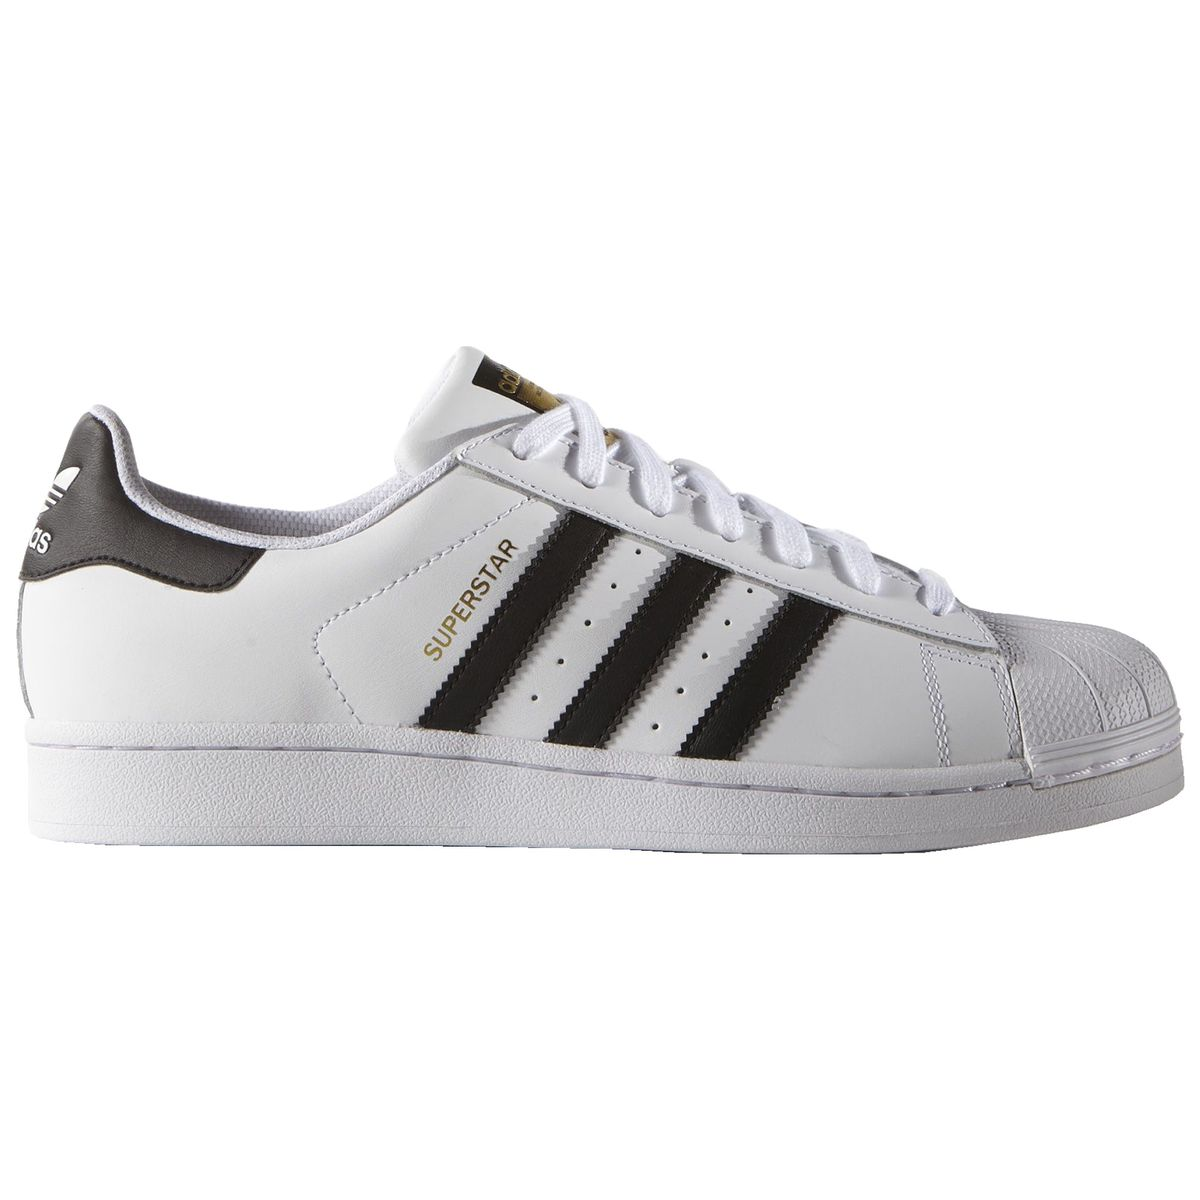 4a684e6d28a3 Adidas Superstar Foundation white black white